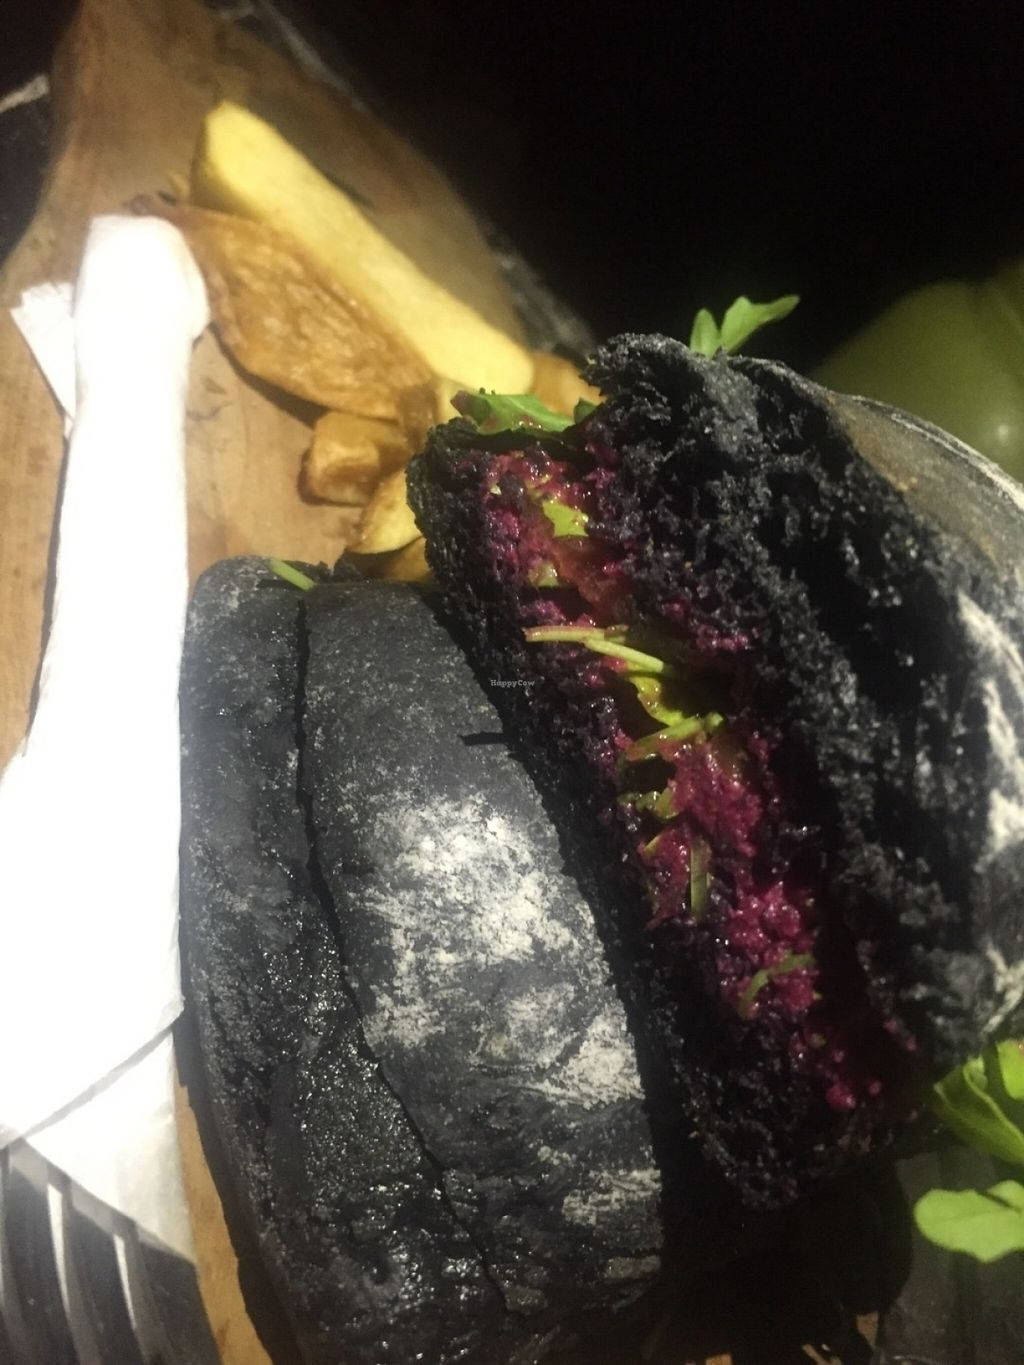 """Photo of Mowie's   by <a href=""""/members/profile/rodgo"""">rodgo</a> <br/>Vegan sandwich  <br/> July 18, 2016  - <a href='/contact/abuse/image/76717/160574'>Report</a>"""